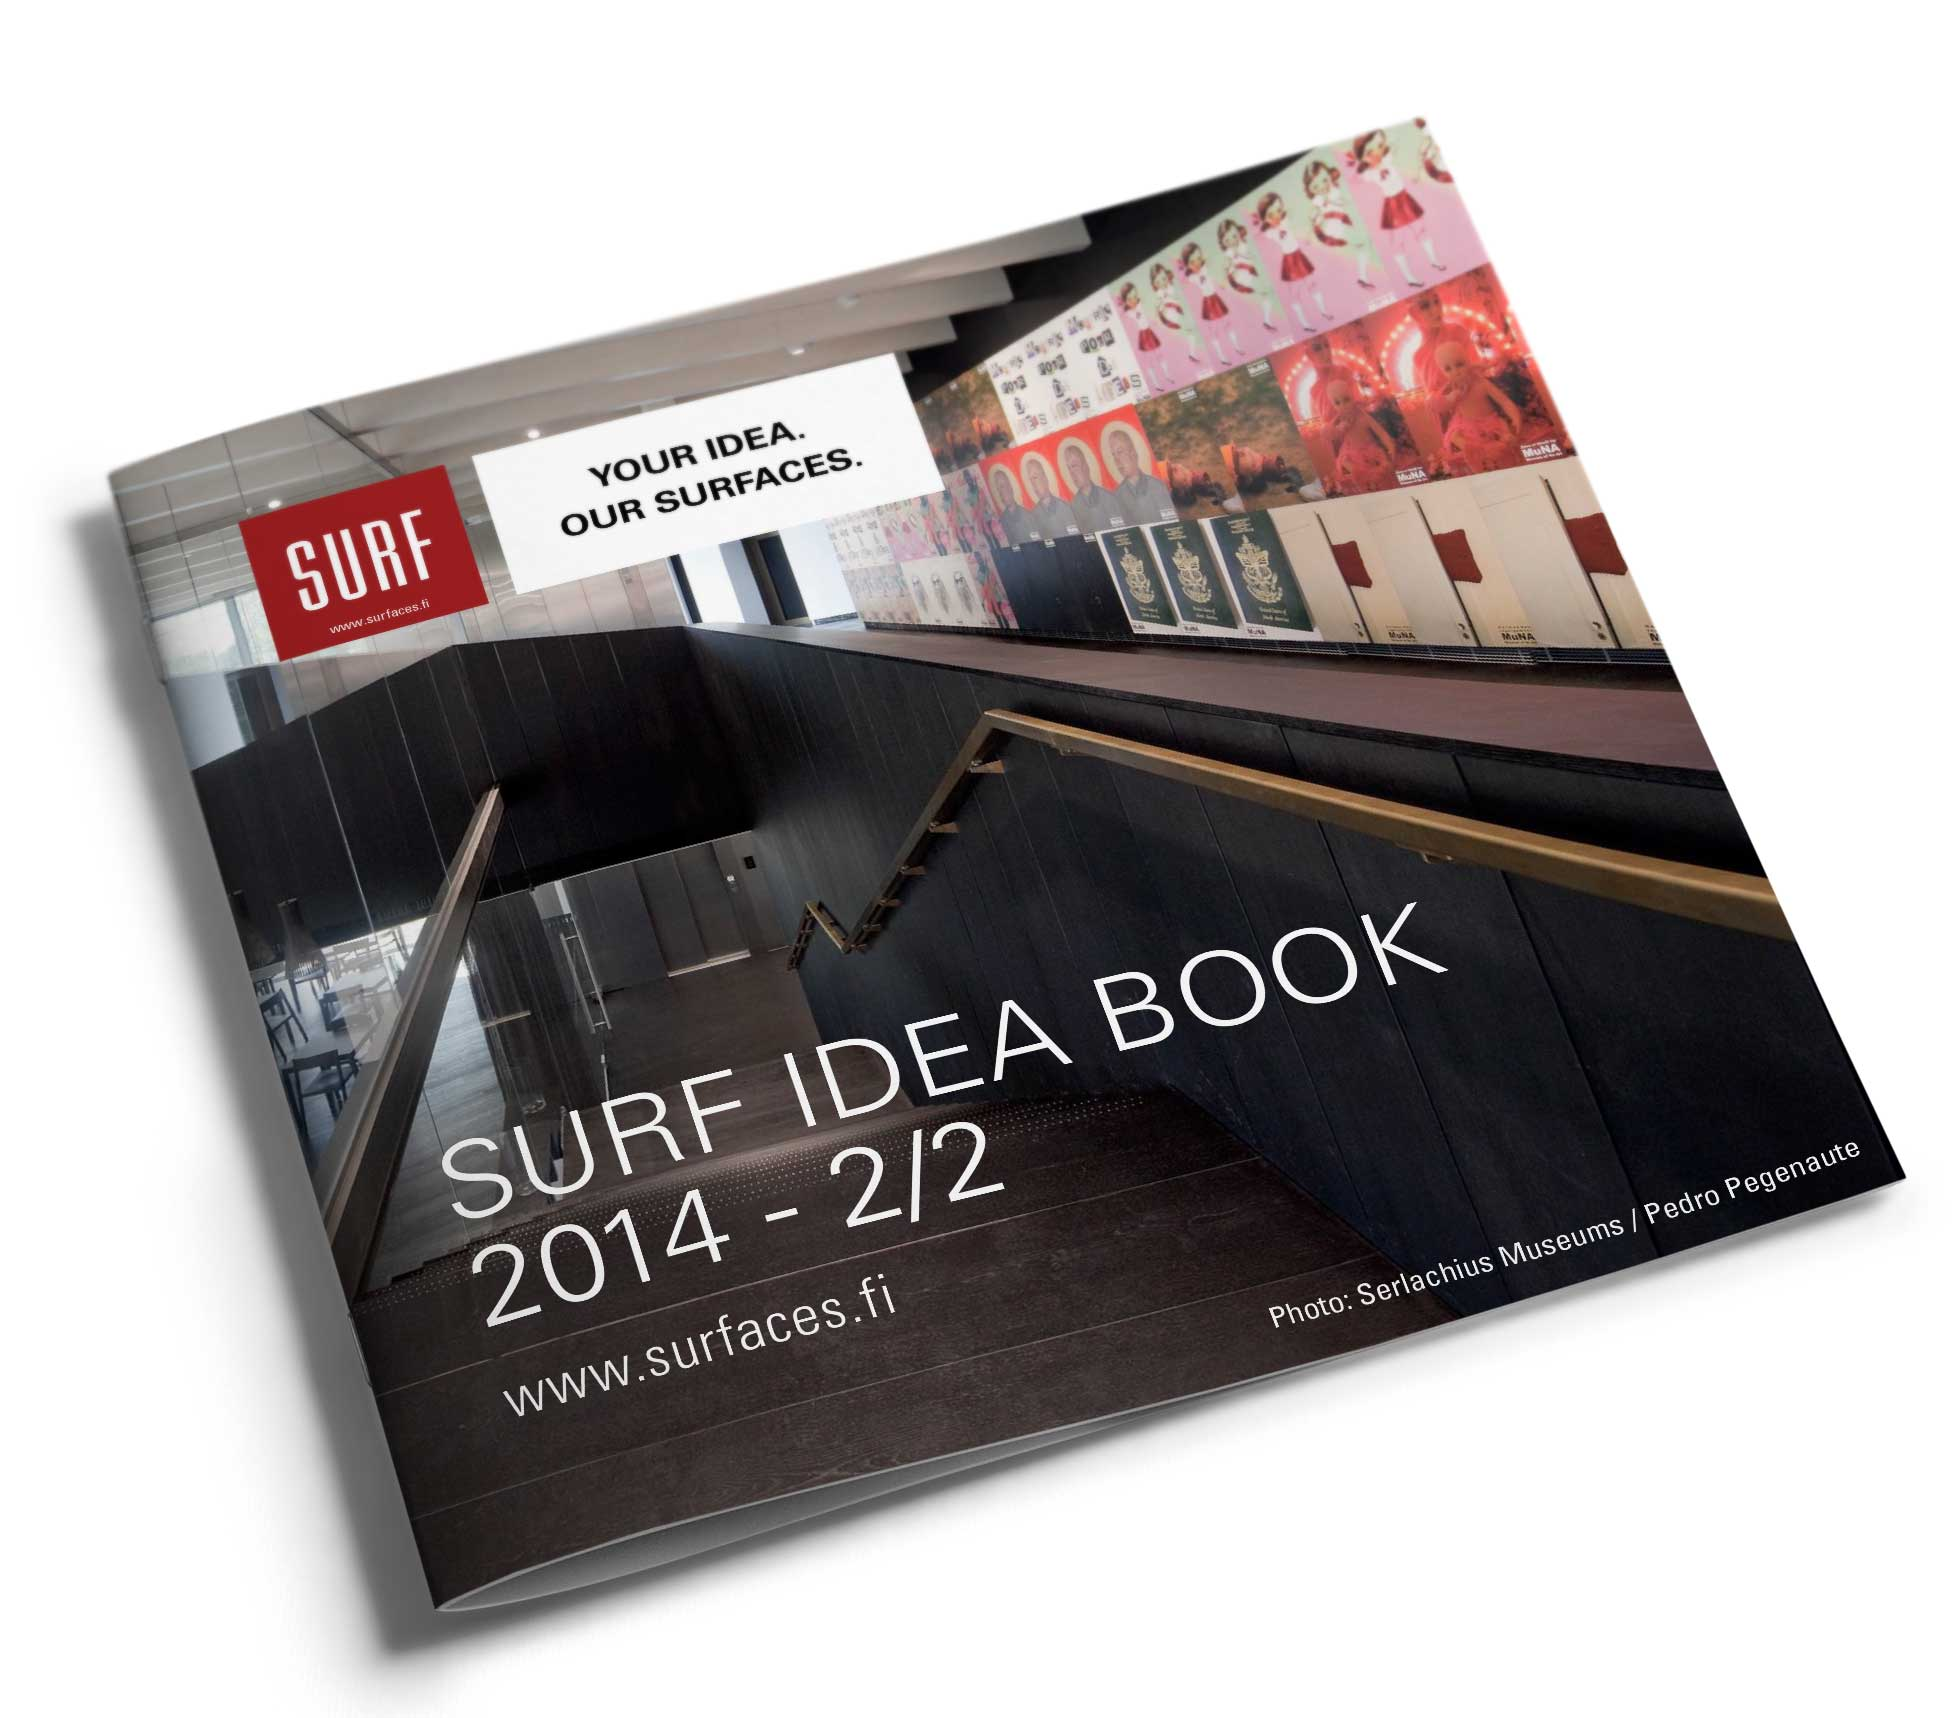 SURF Idea Book 2014 - 1/2